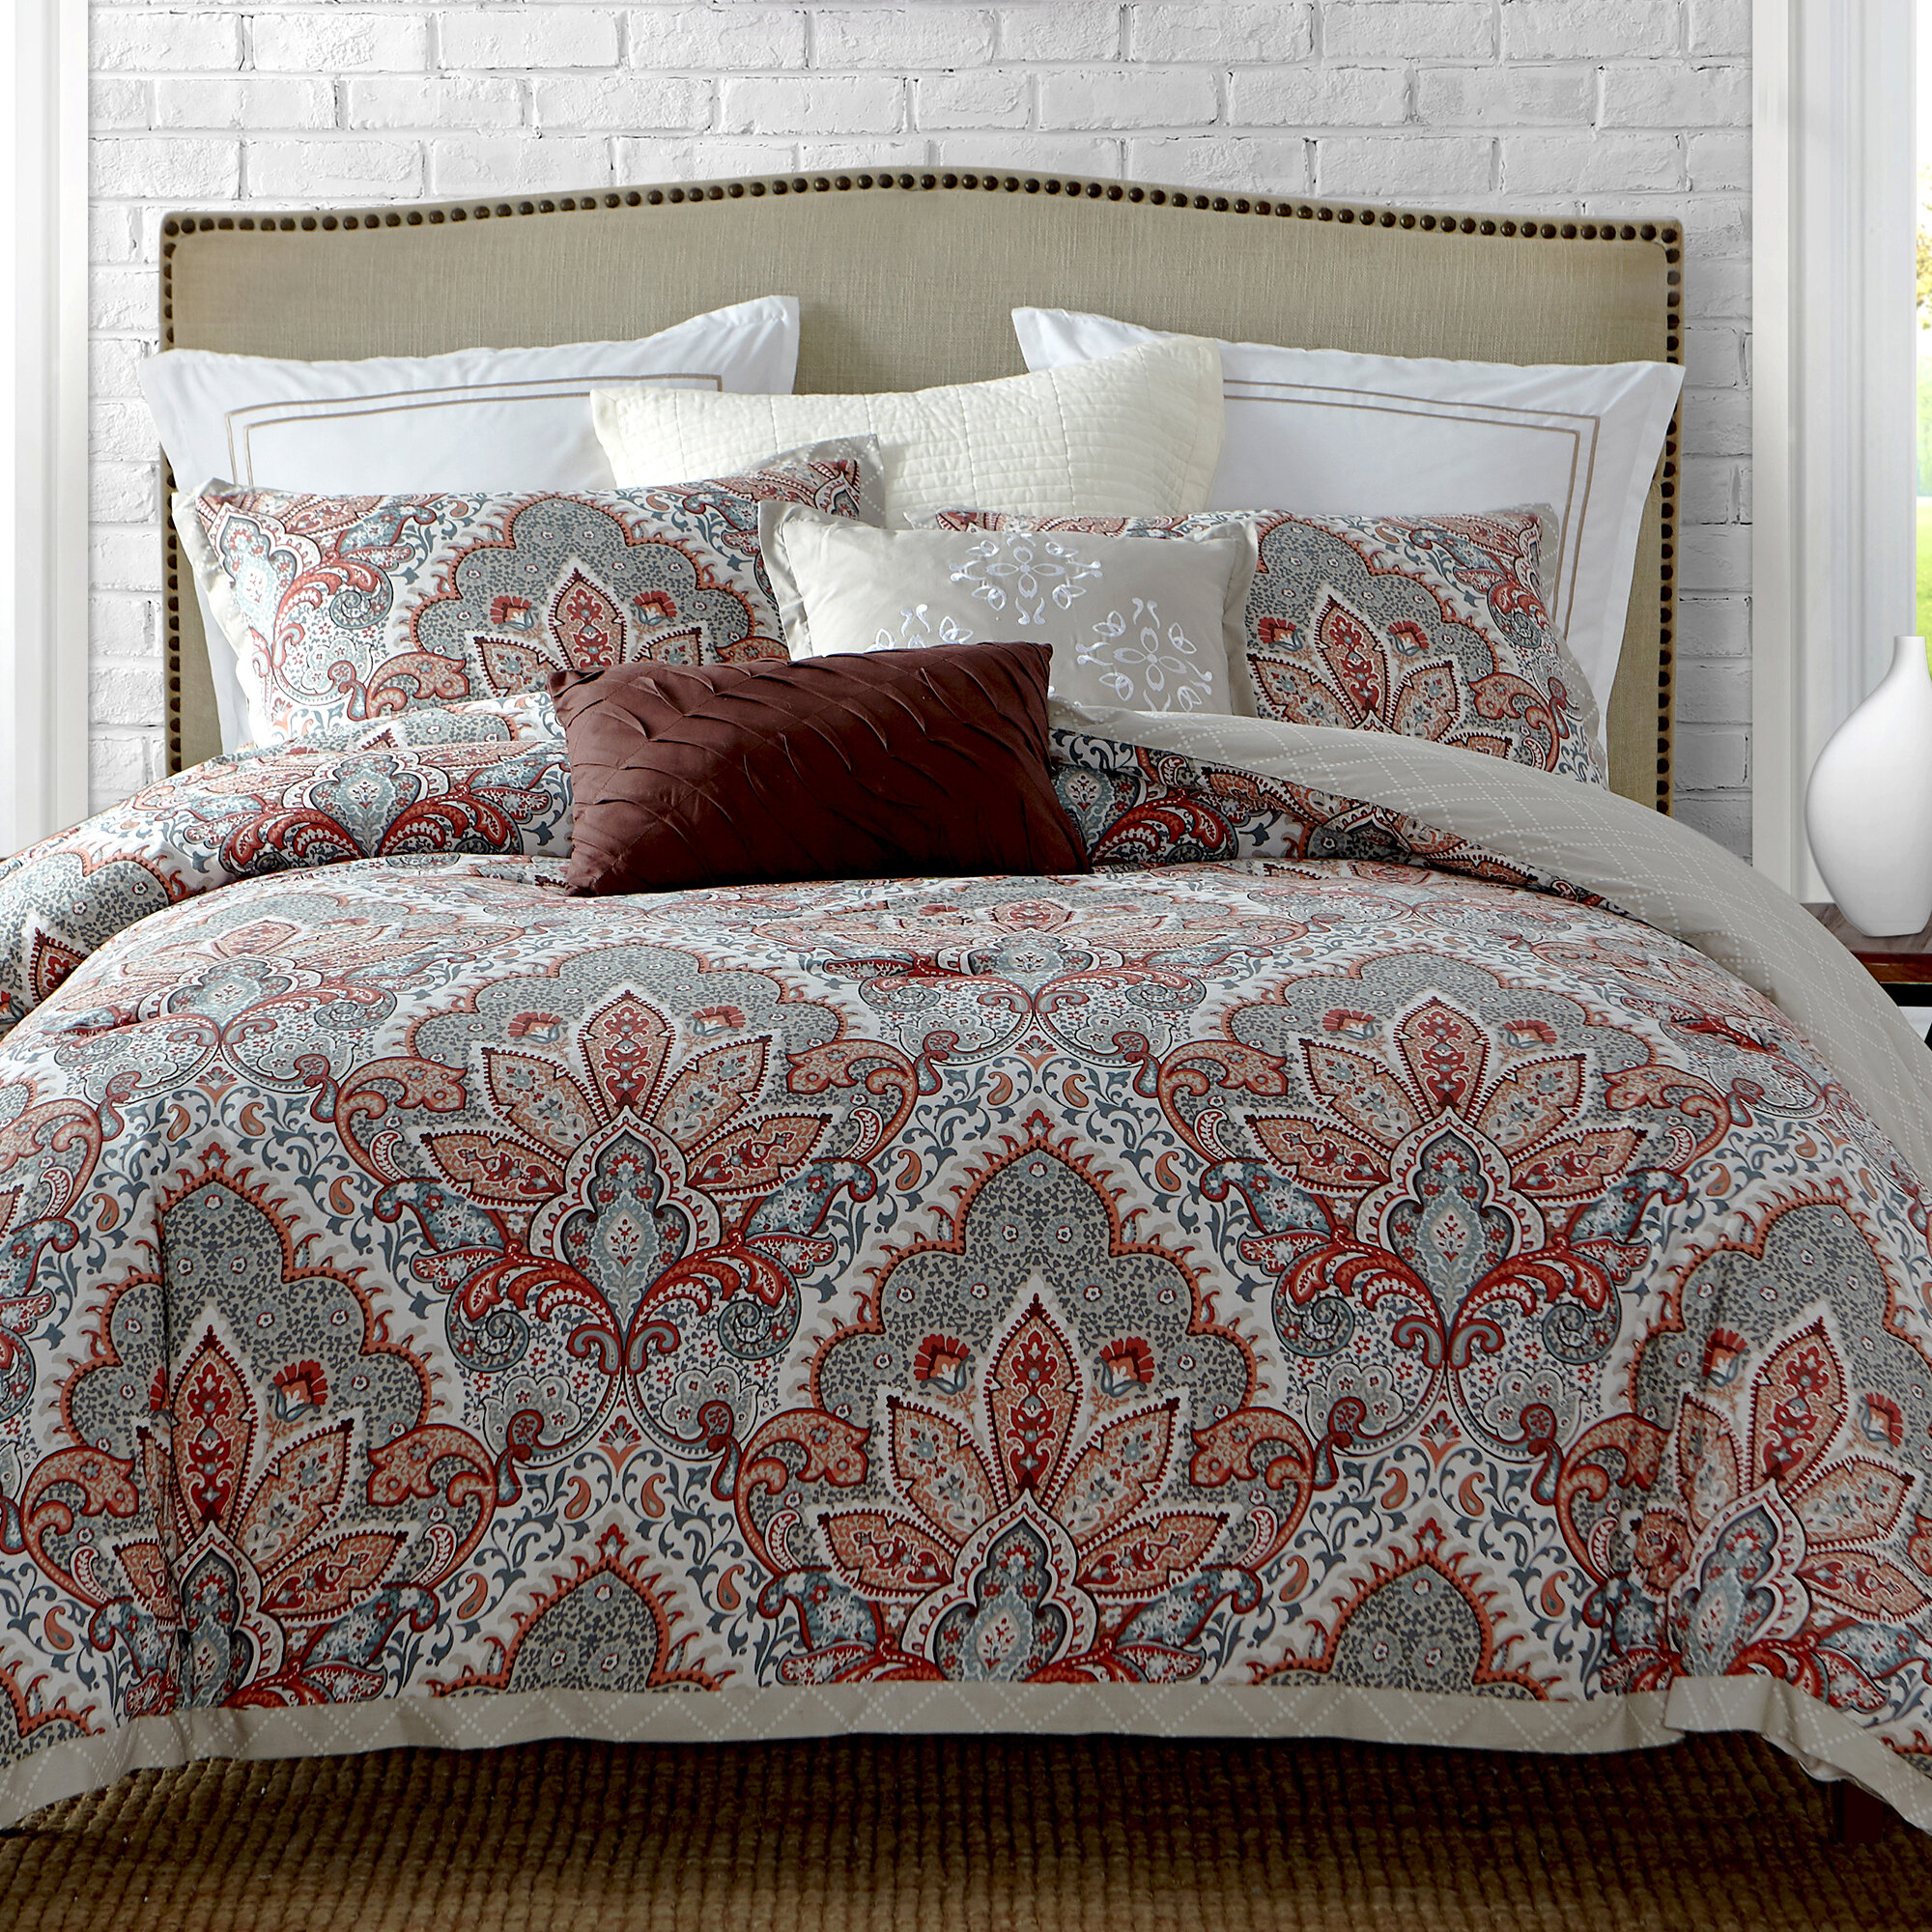 QUILTED 3 Pc COTTON REVERSIBLE WINTER BEDSPREAD COMFORTER THROW 2 PILLOW SET